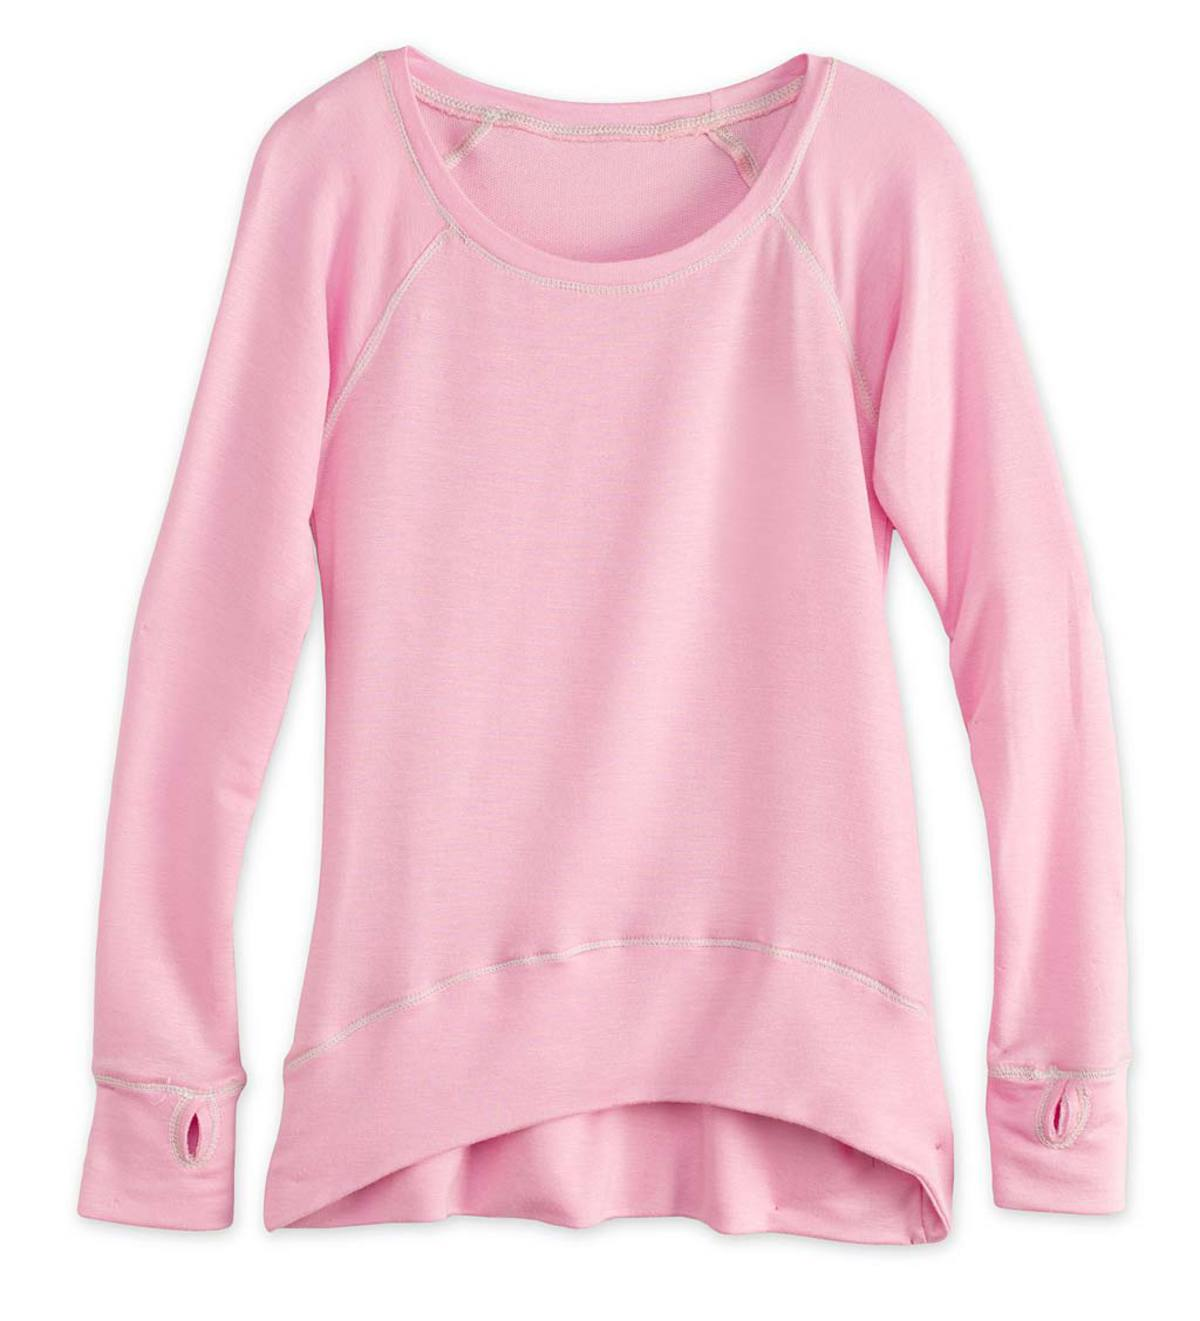 High-Low Raglan-Sleeve Top - Pink - 6X